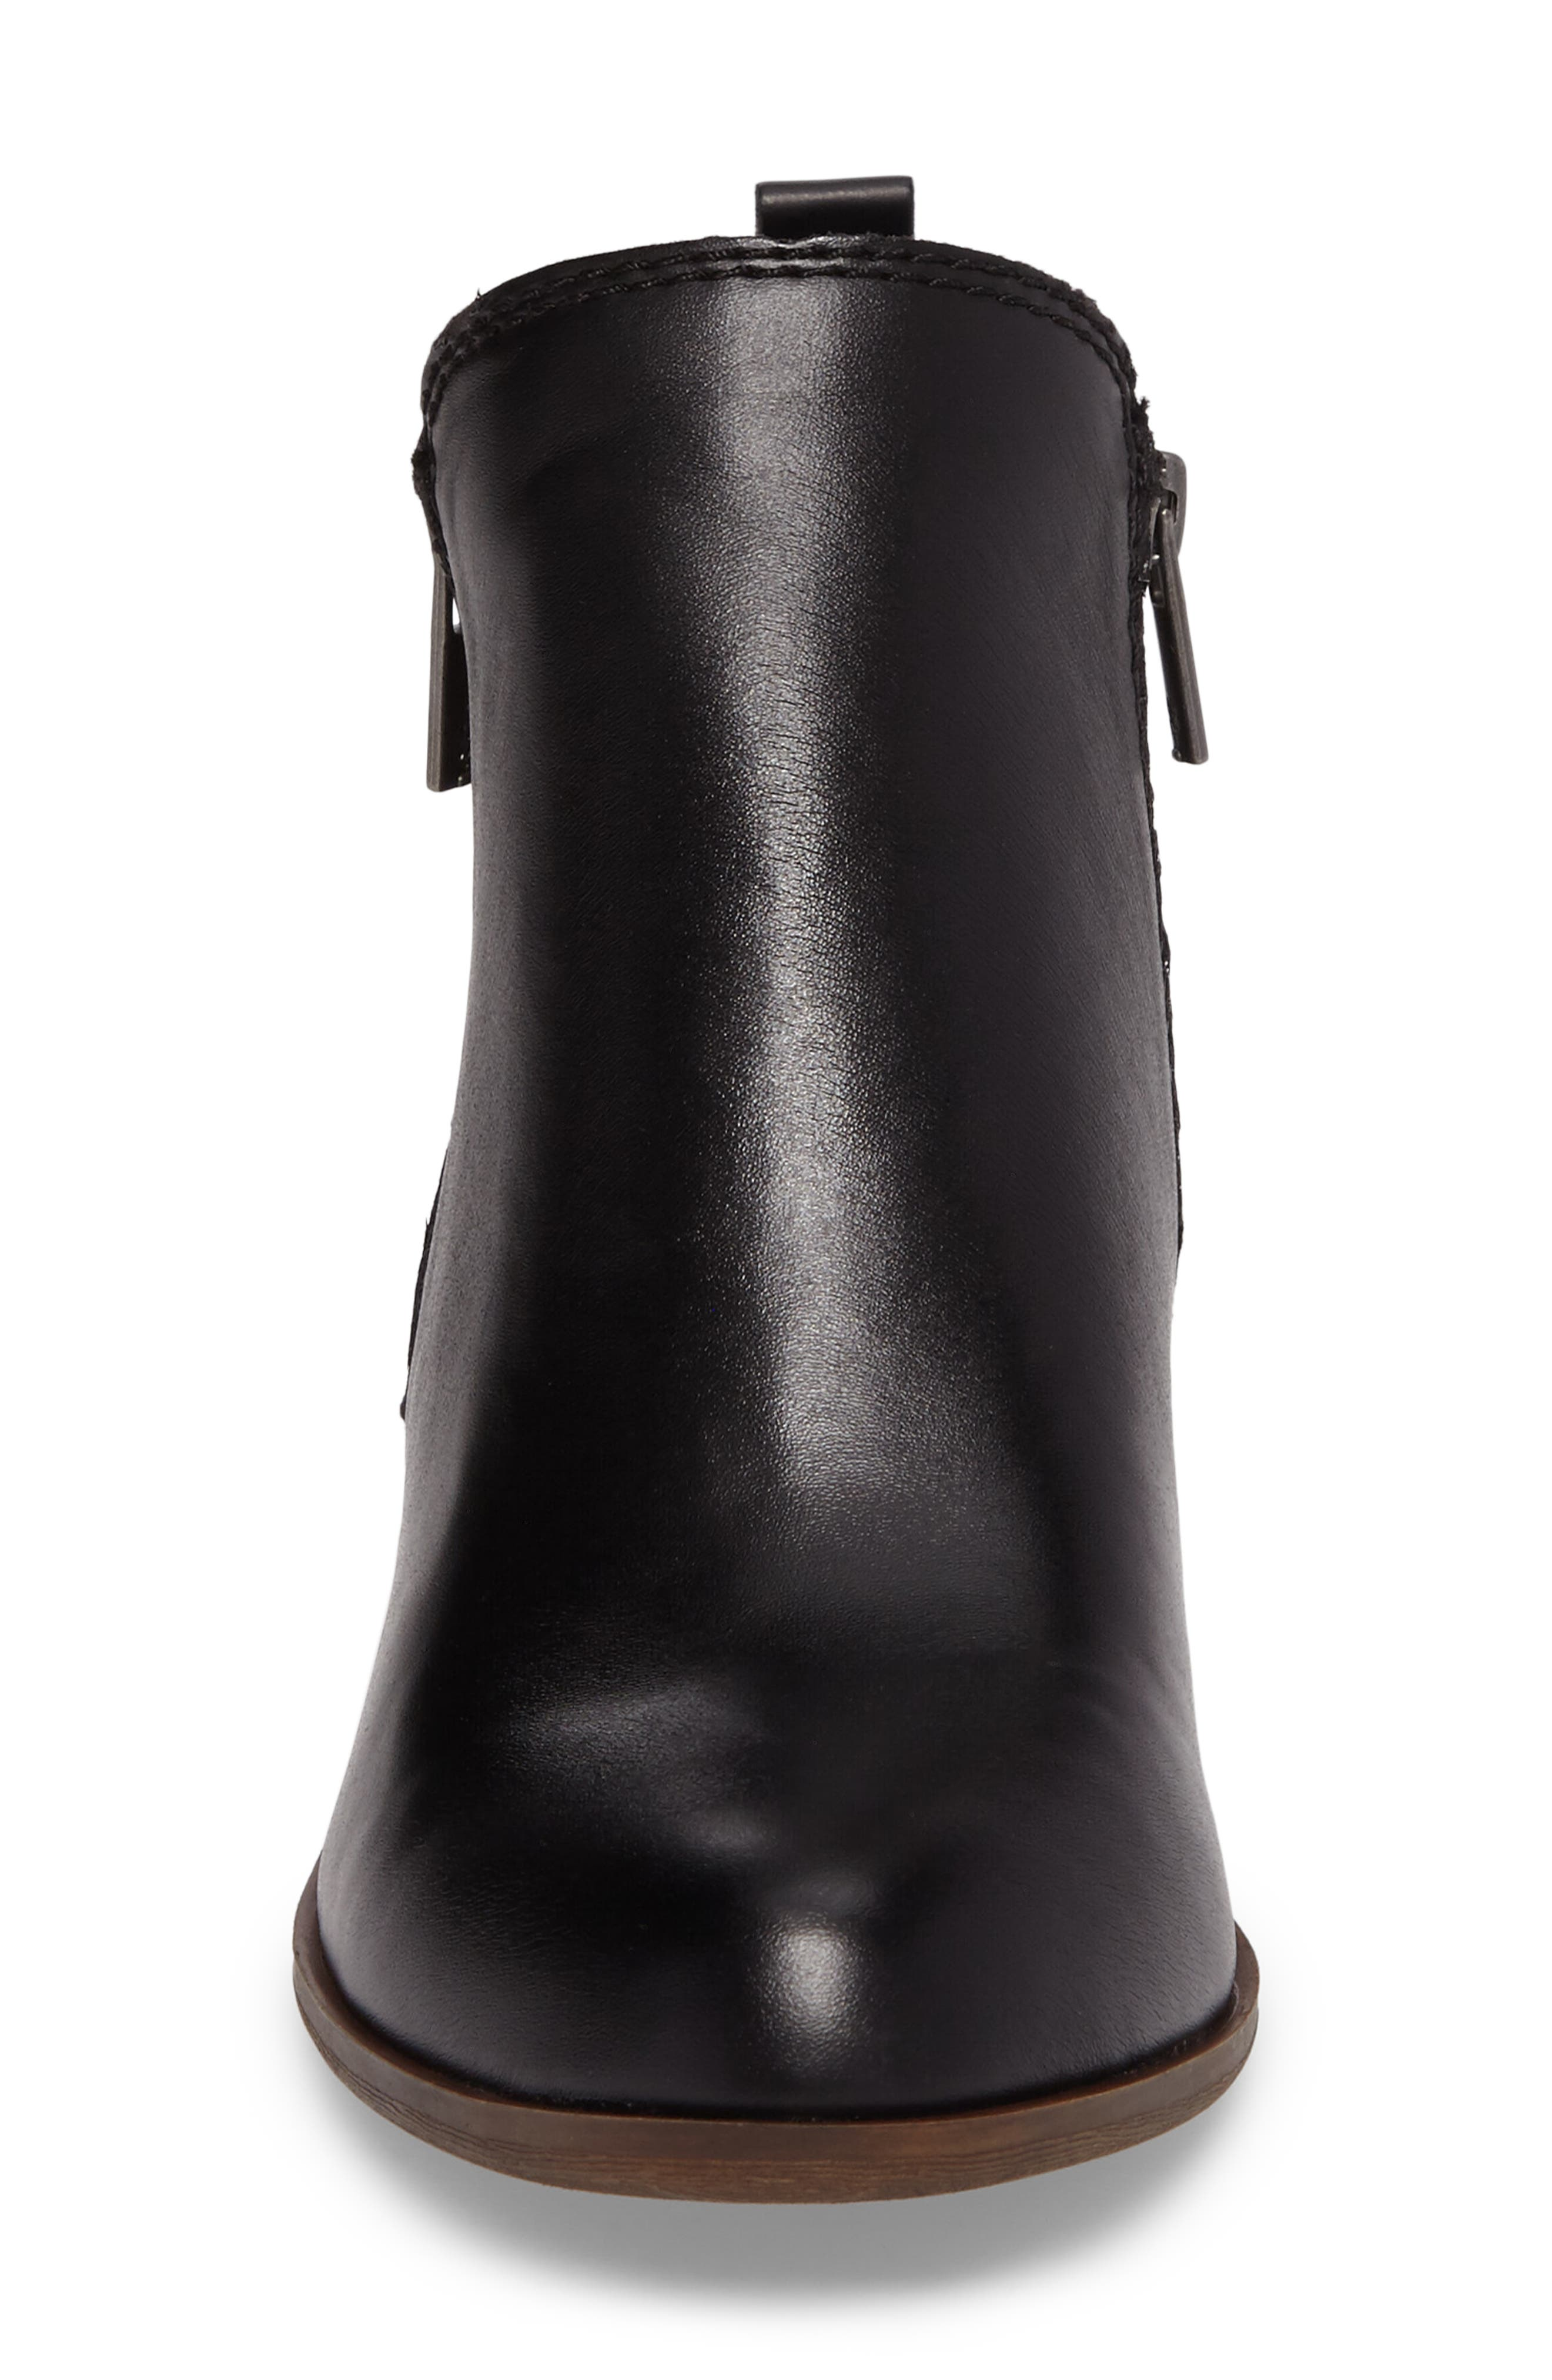 LUCKY BRAND, Basel Double-Zip Bootie, Alternate thumbnail 4, color, 001